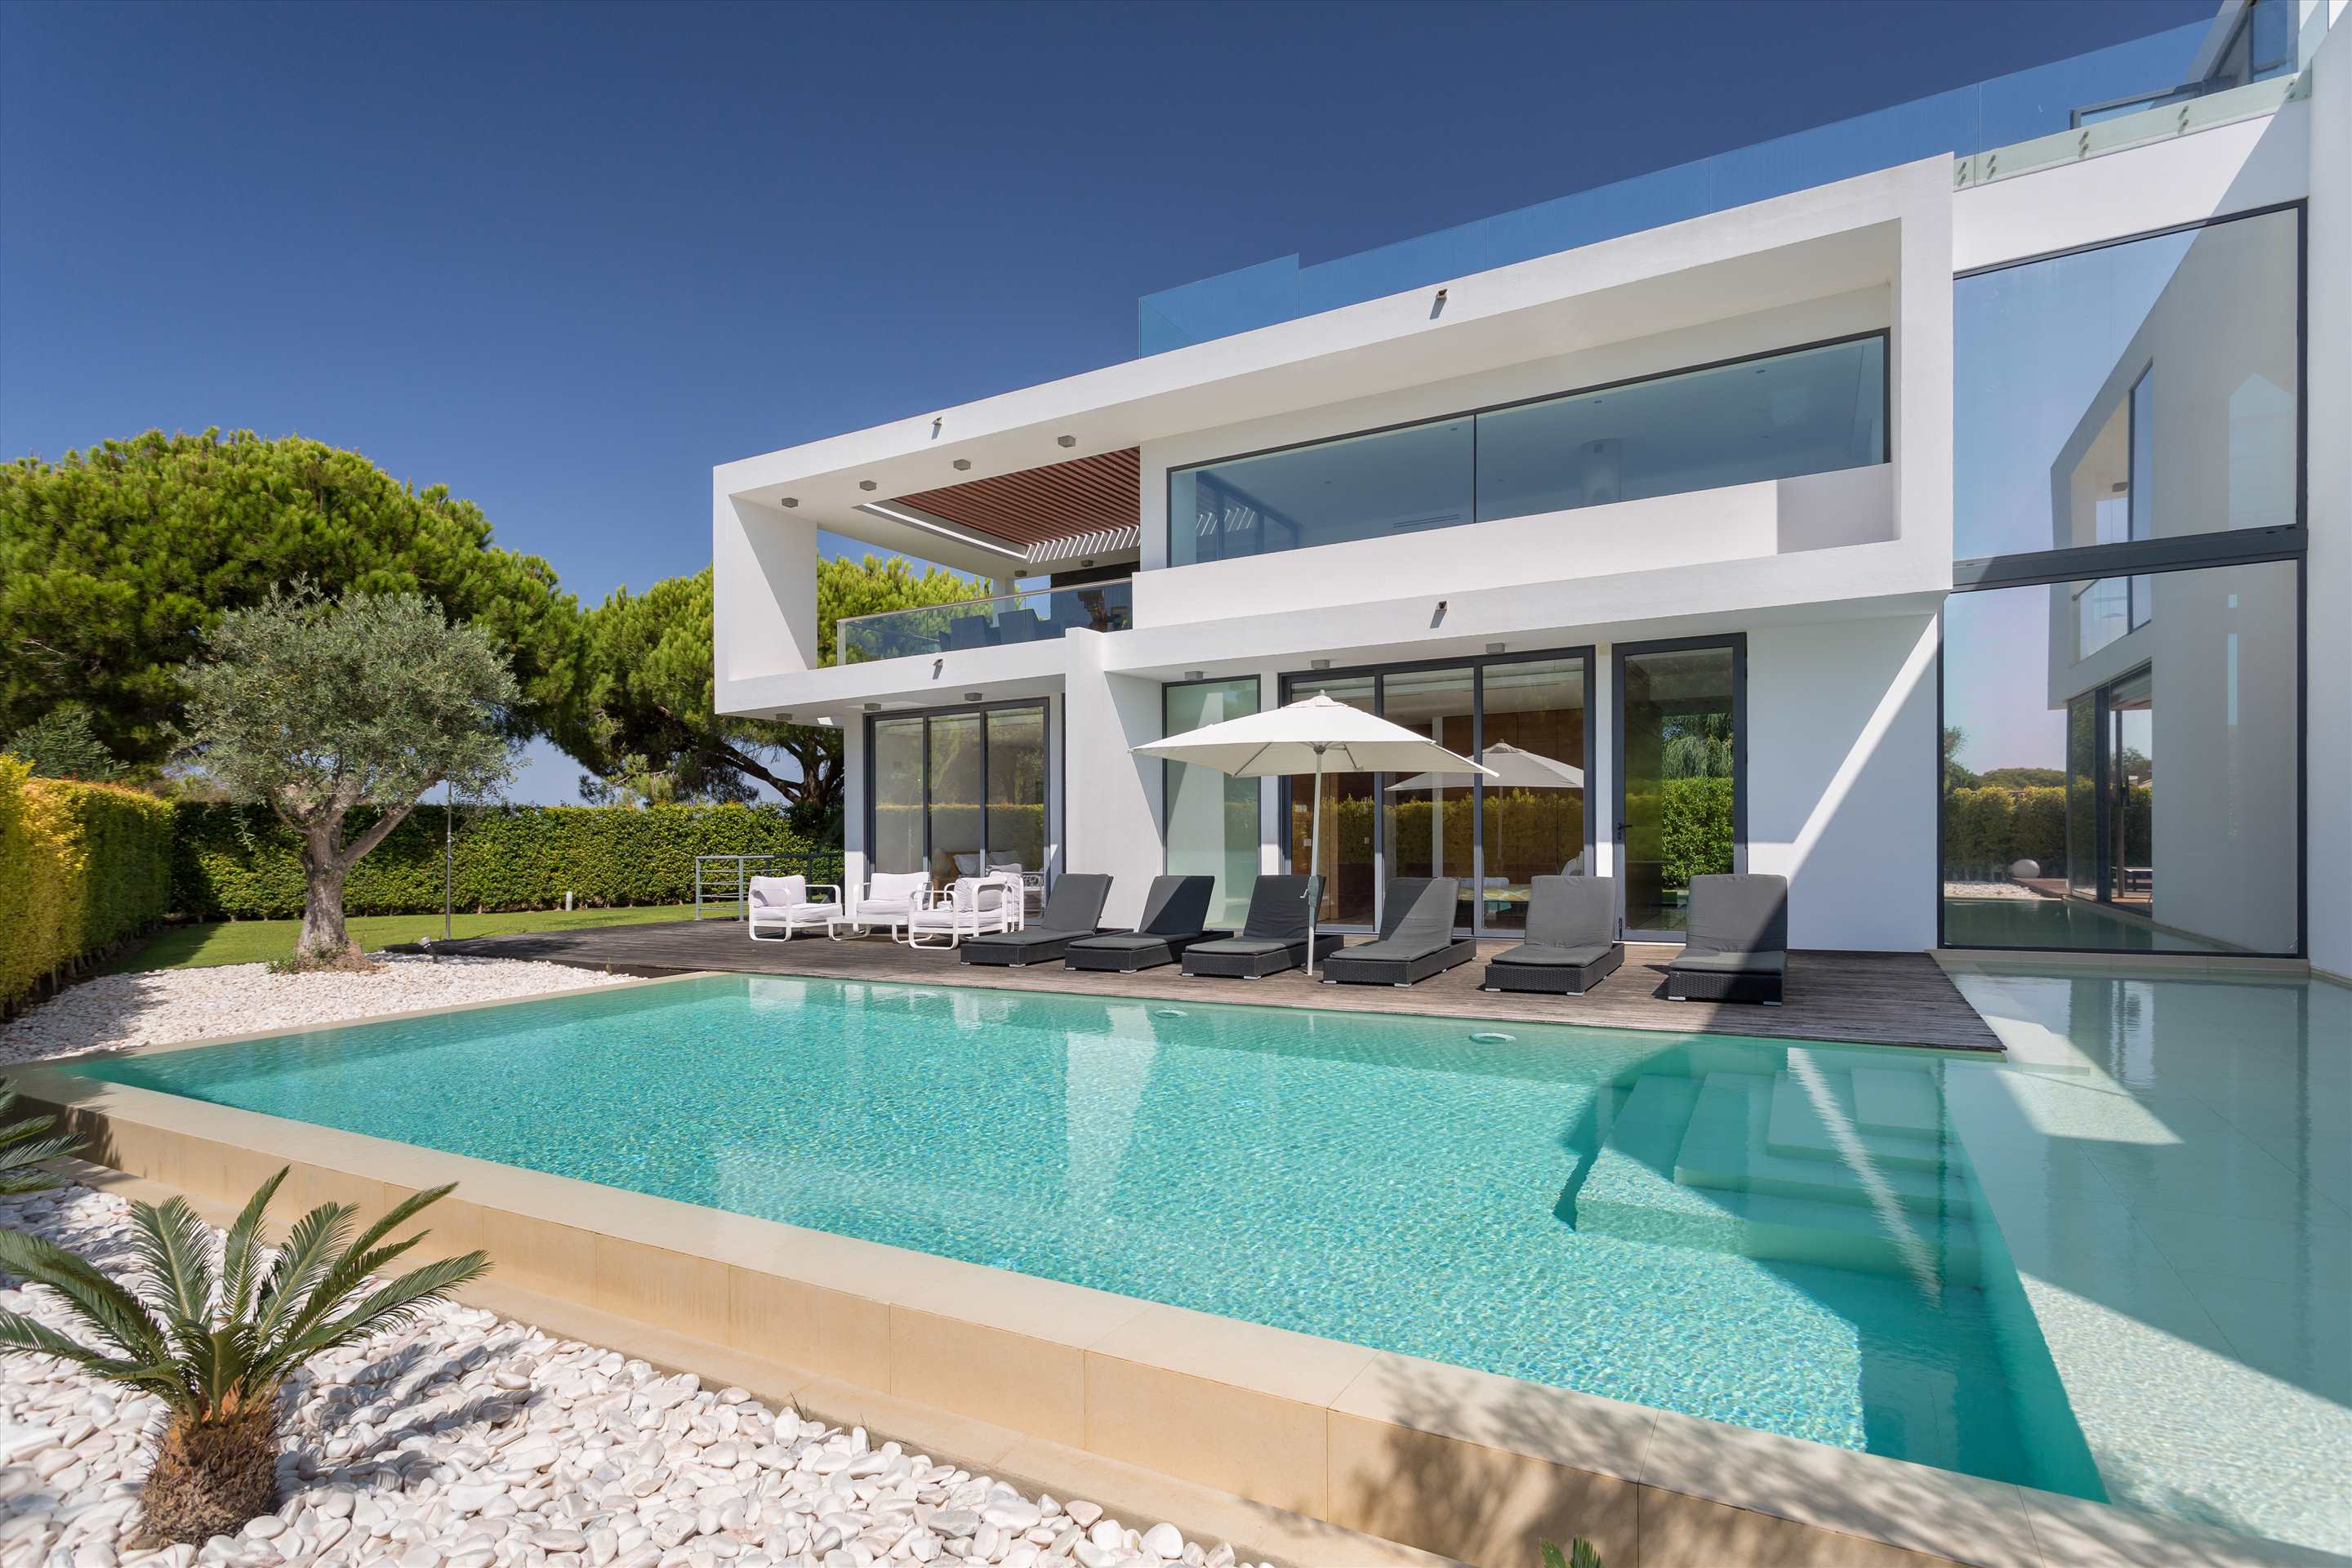 Villa Gemini, 4 bedroom villa in Vale do Lobo, Algarve Photo #5